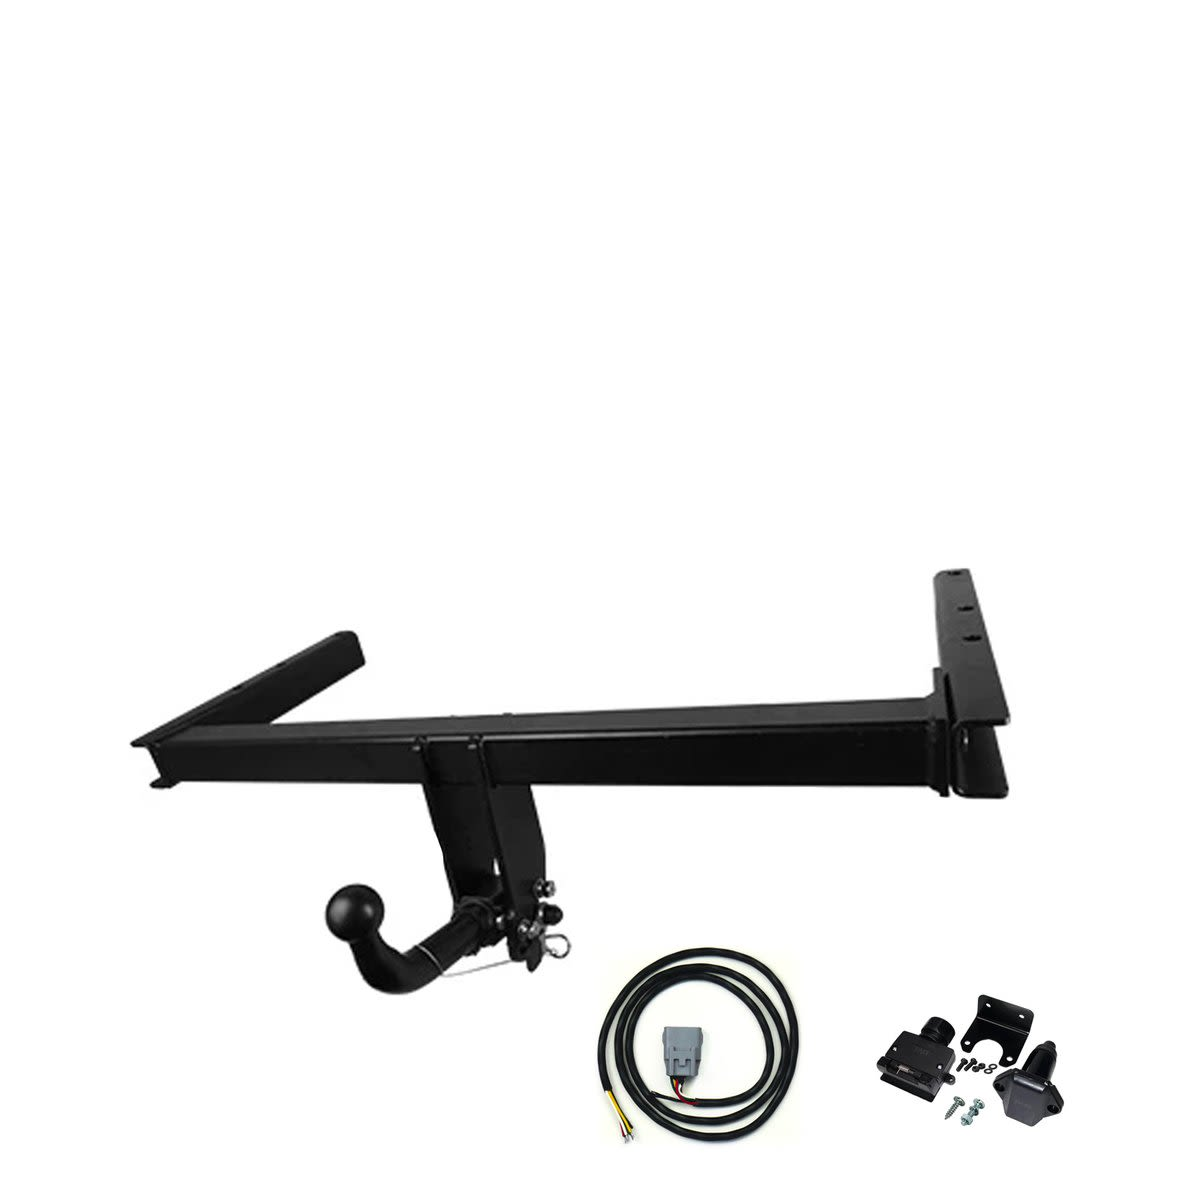 TAG Towbars European Style Tongue to suit Audi A6 Allroad (11/2004 - 06/2011)